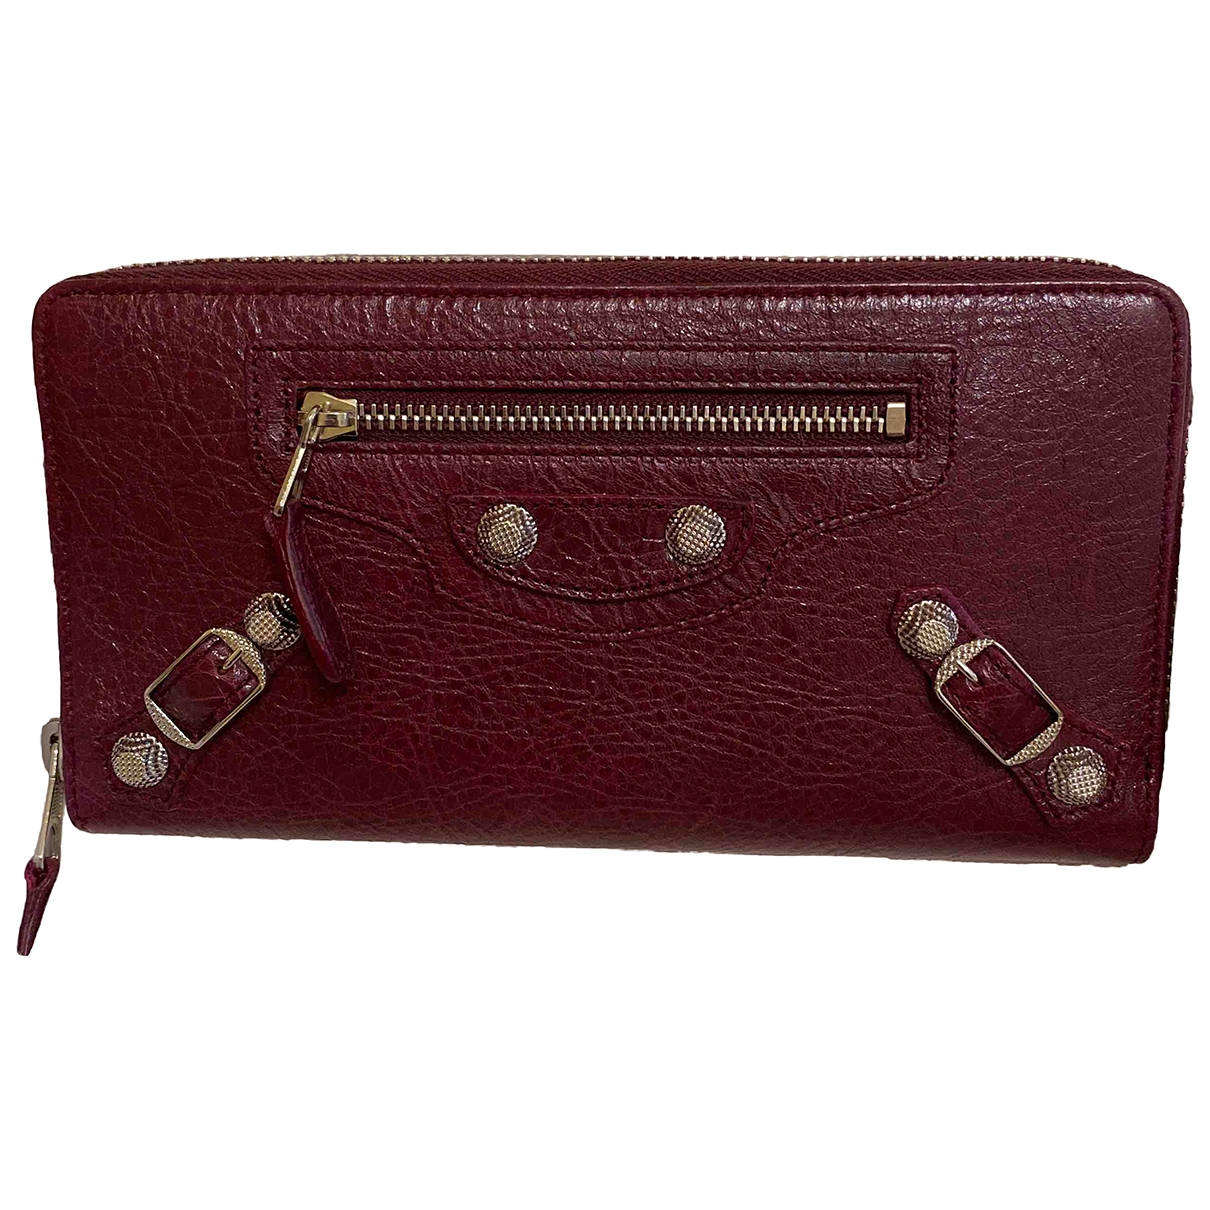 Balenciaga \N Burgundy Leather wallet for Women \N